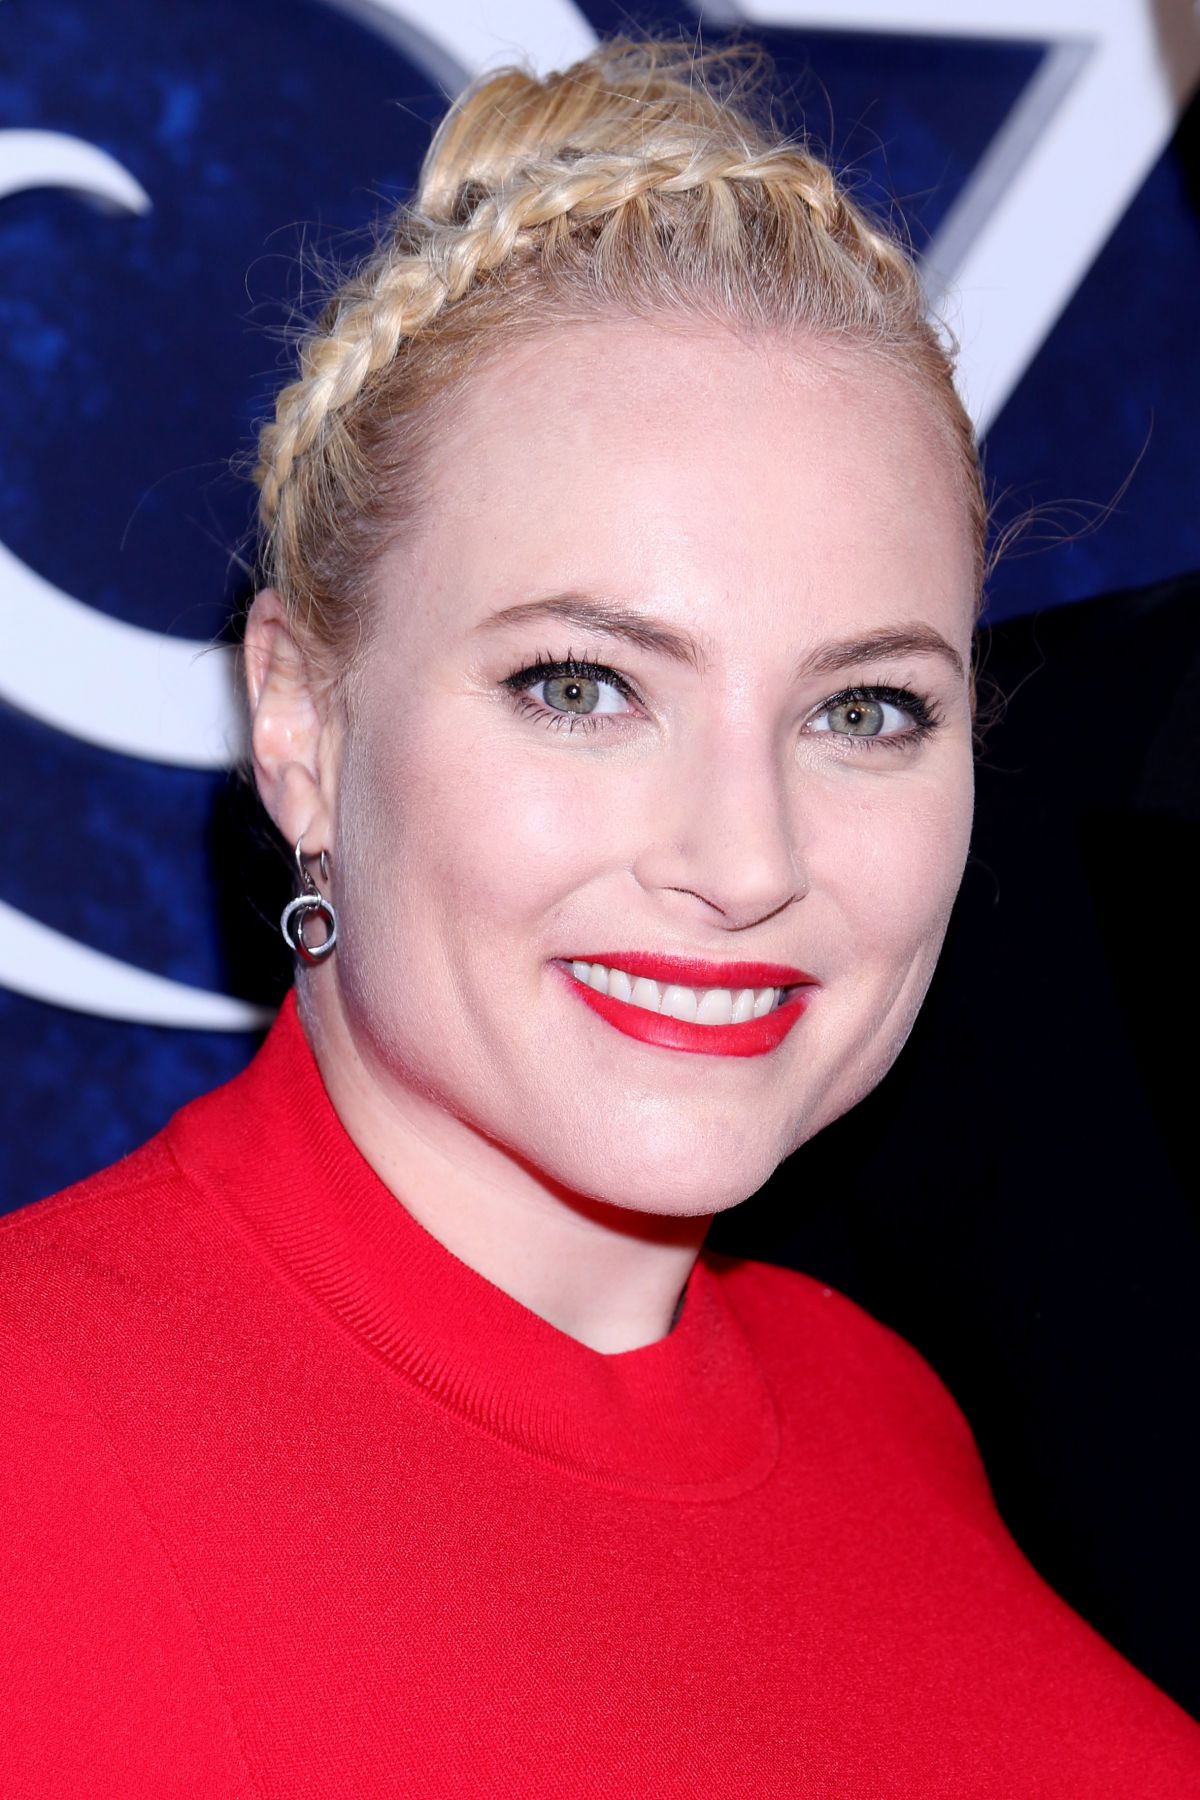 meghan mccain - photo #8